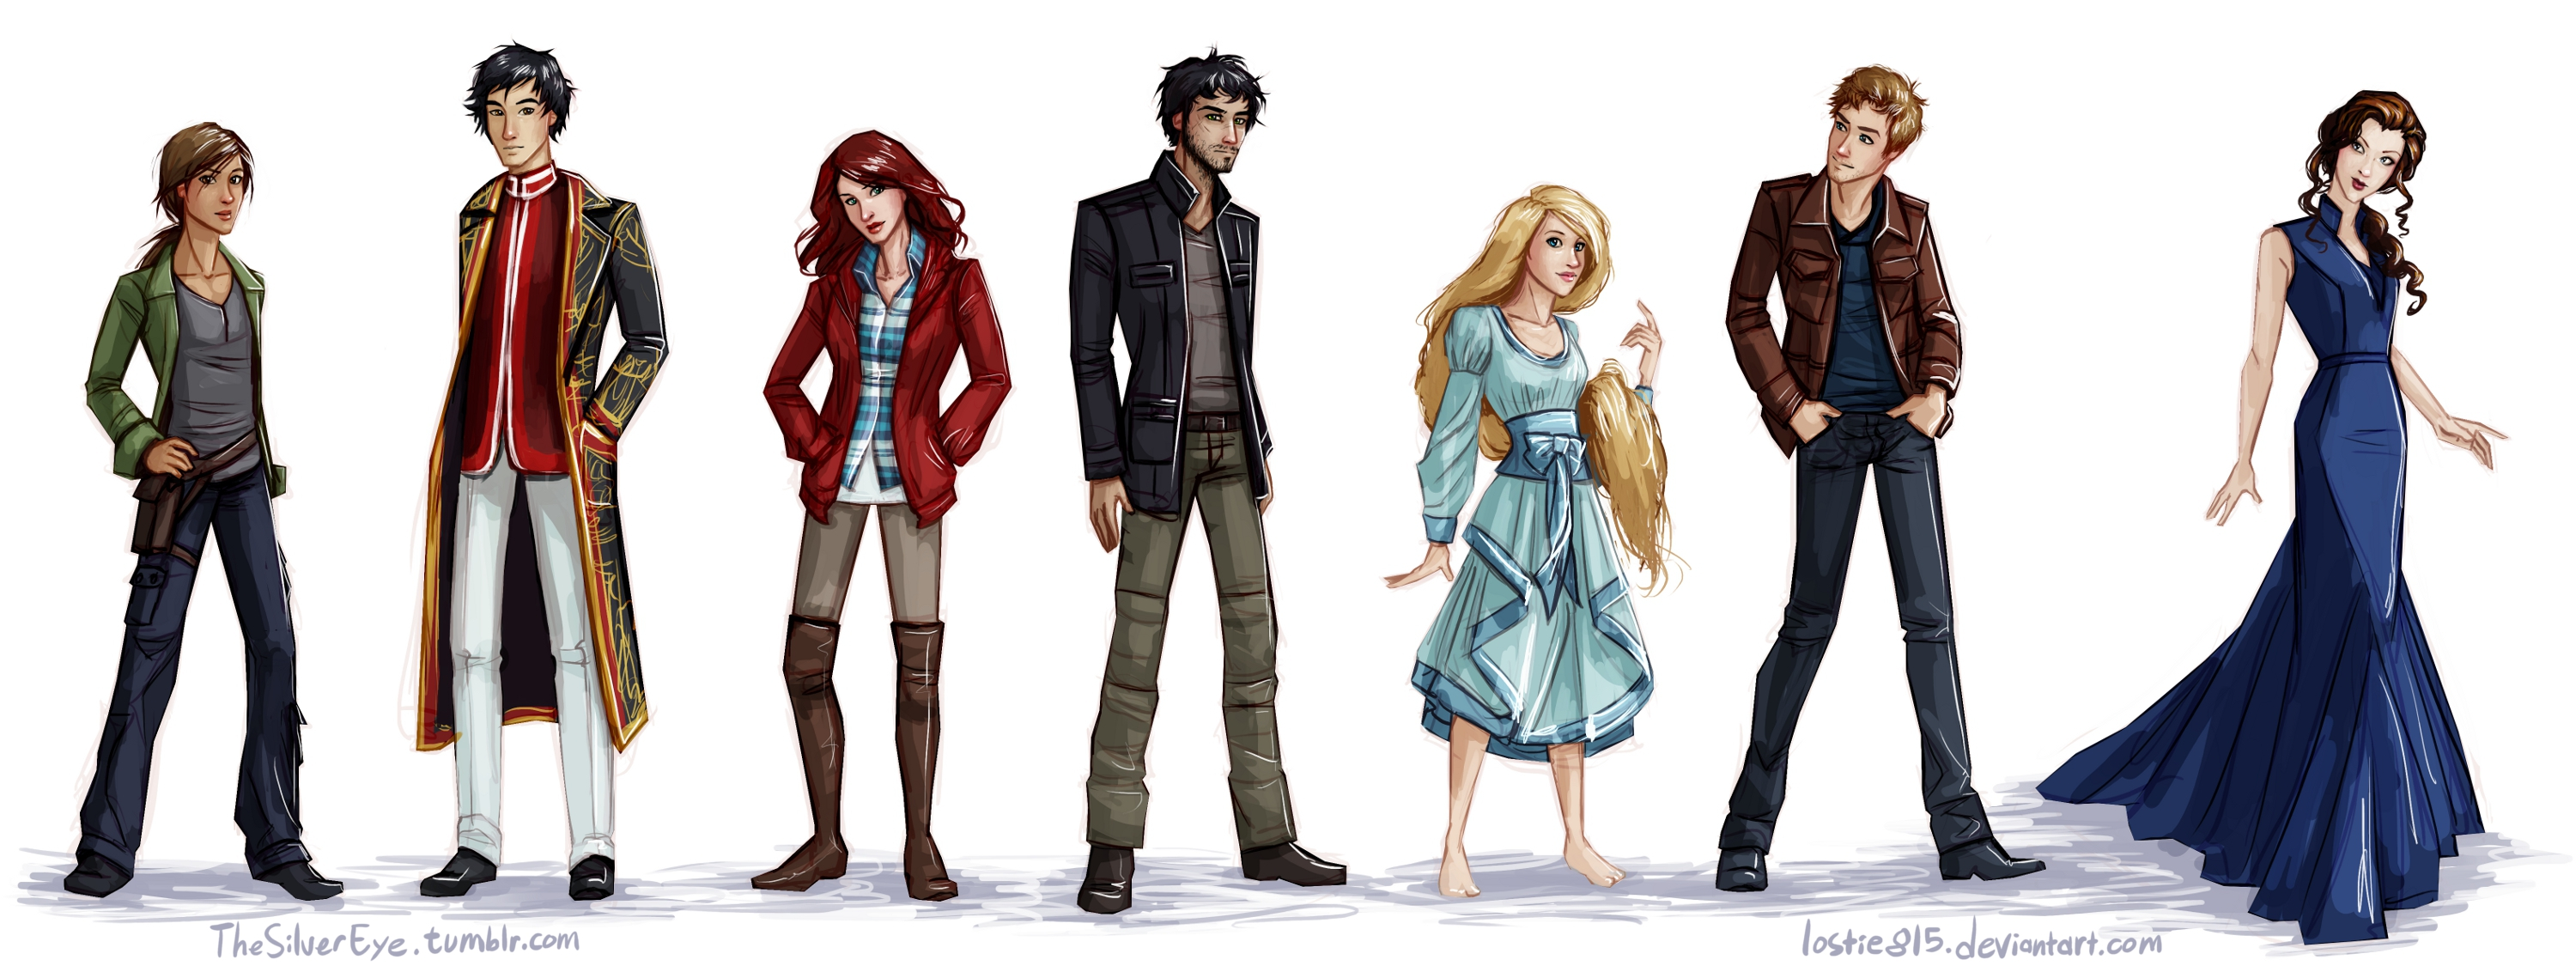 The Lunar Chronicles Characters